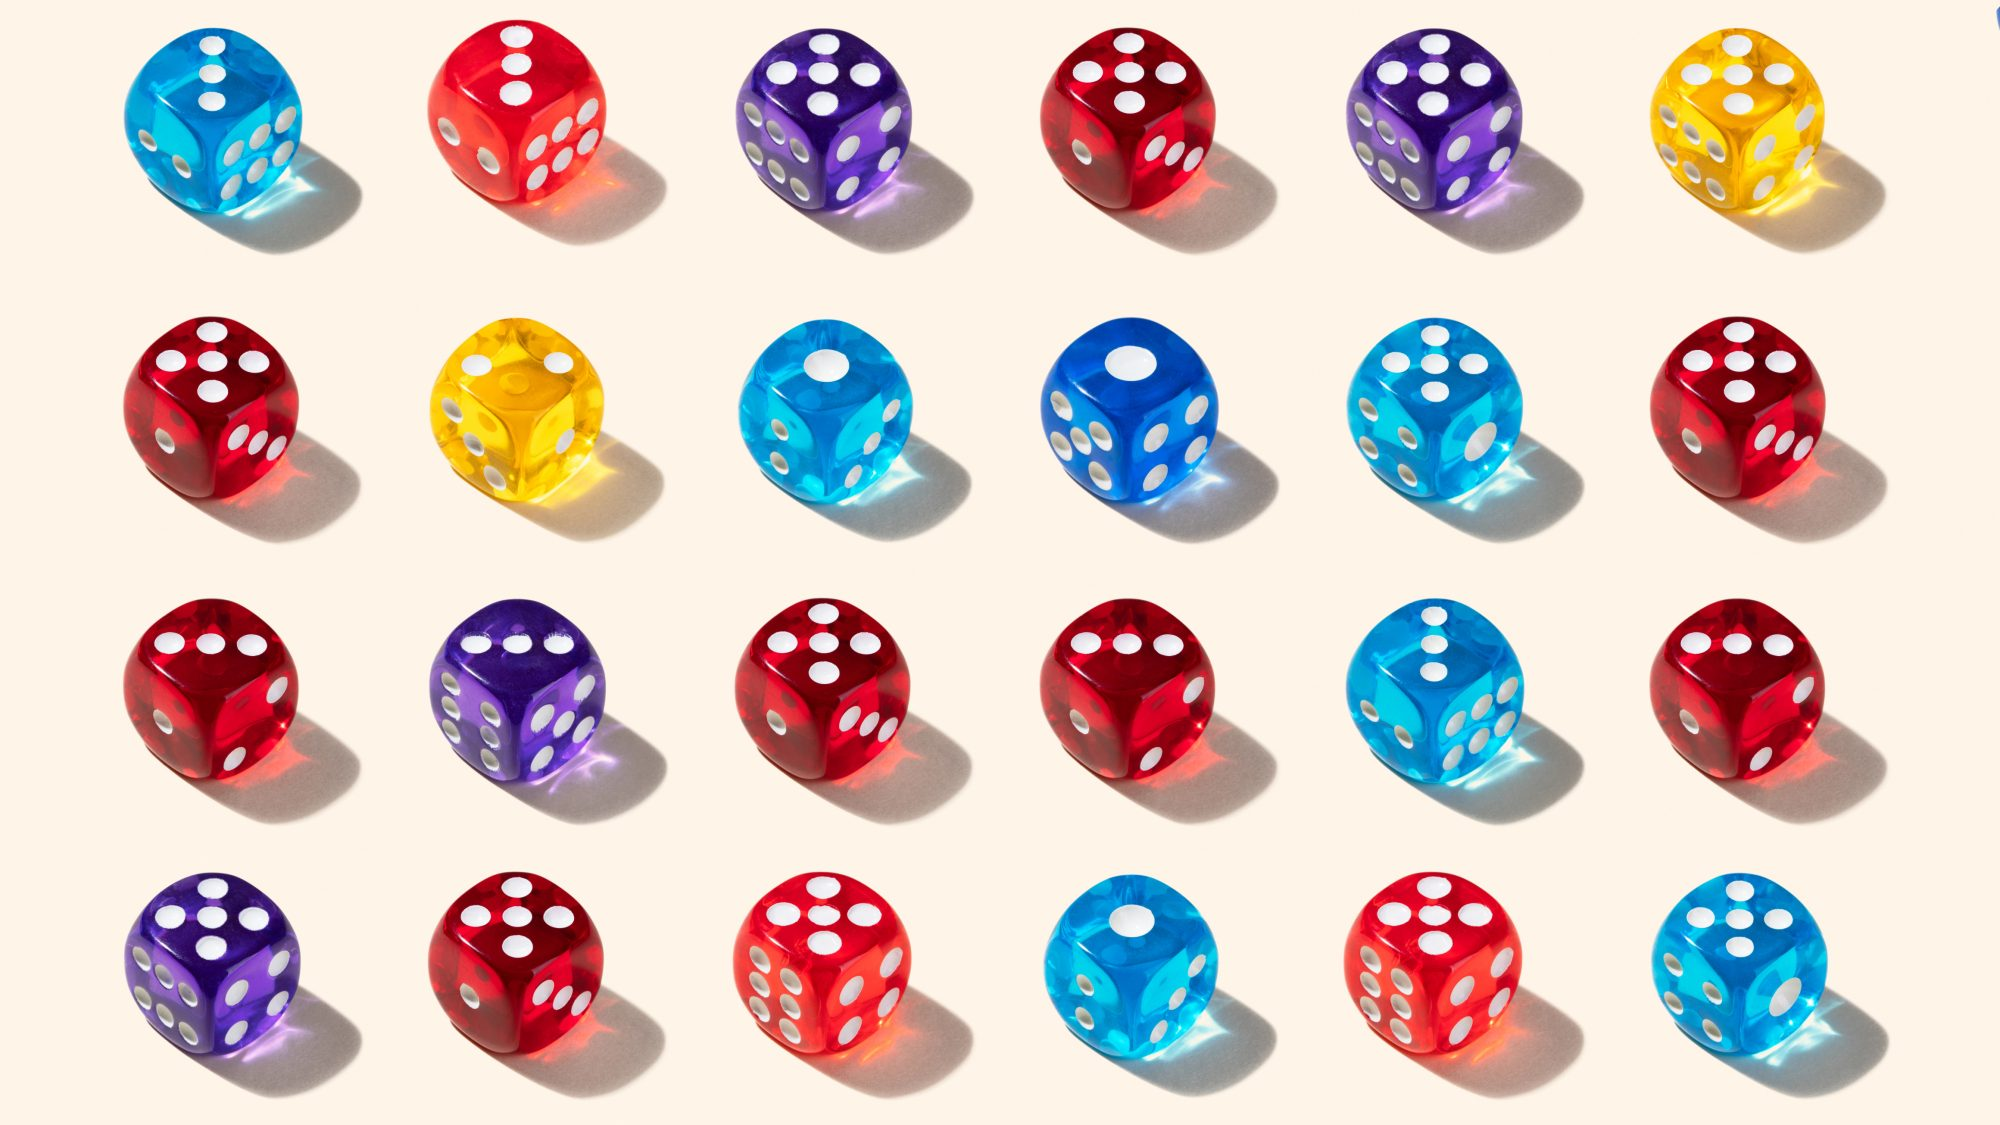 virtual-board-games: colorful dice for Yahtzee